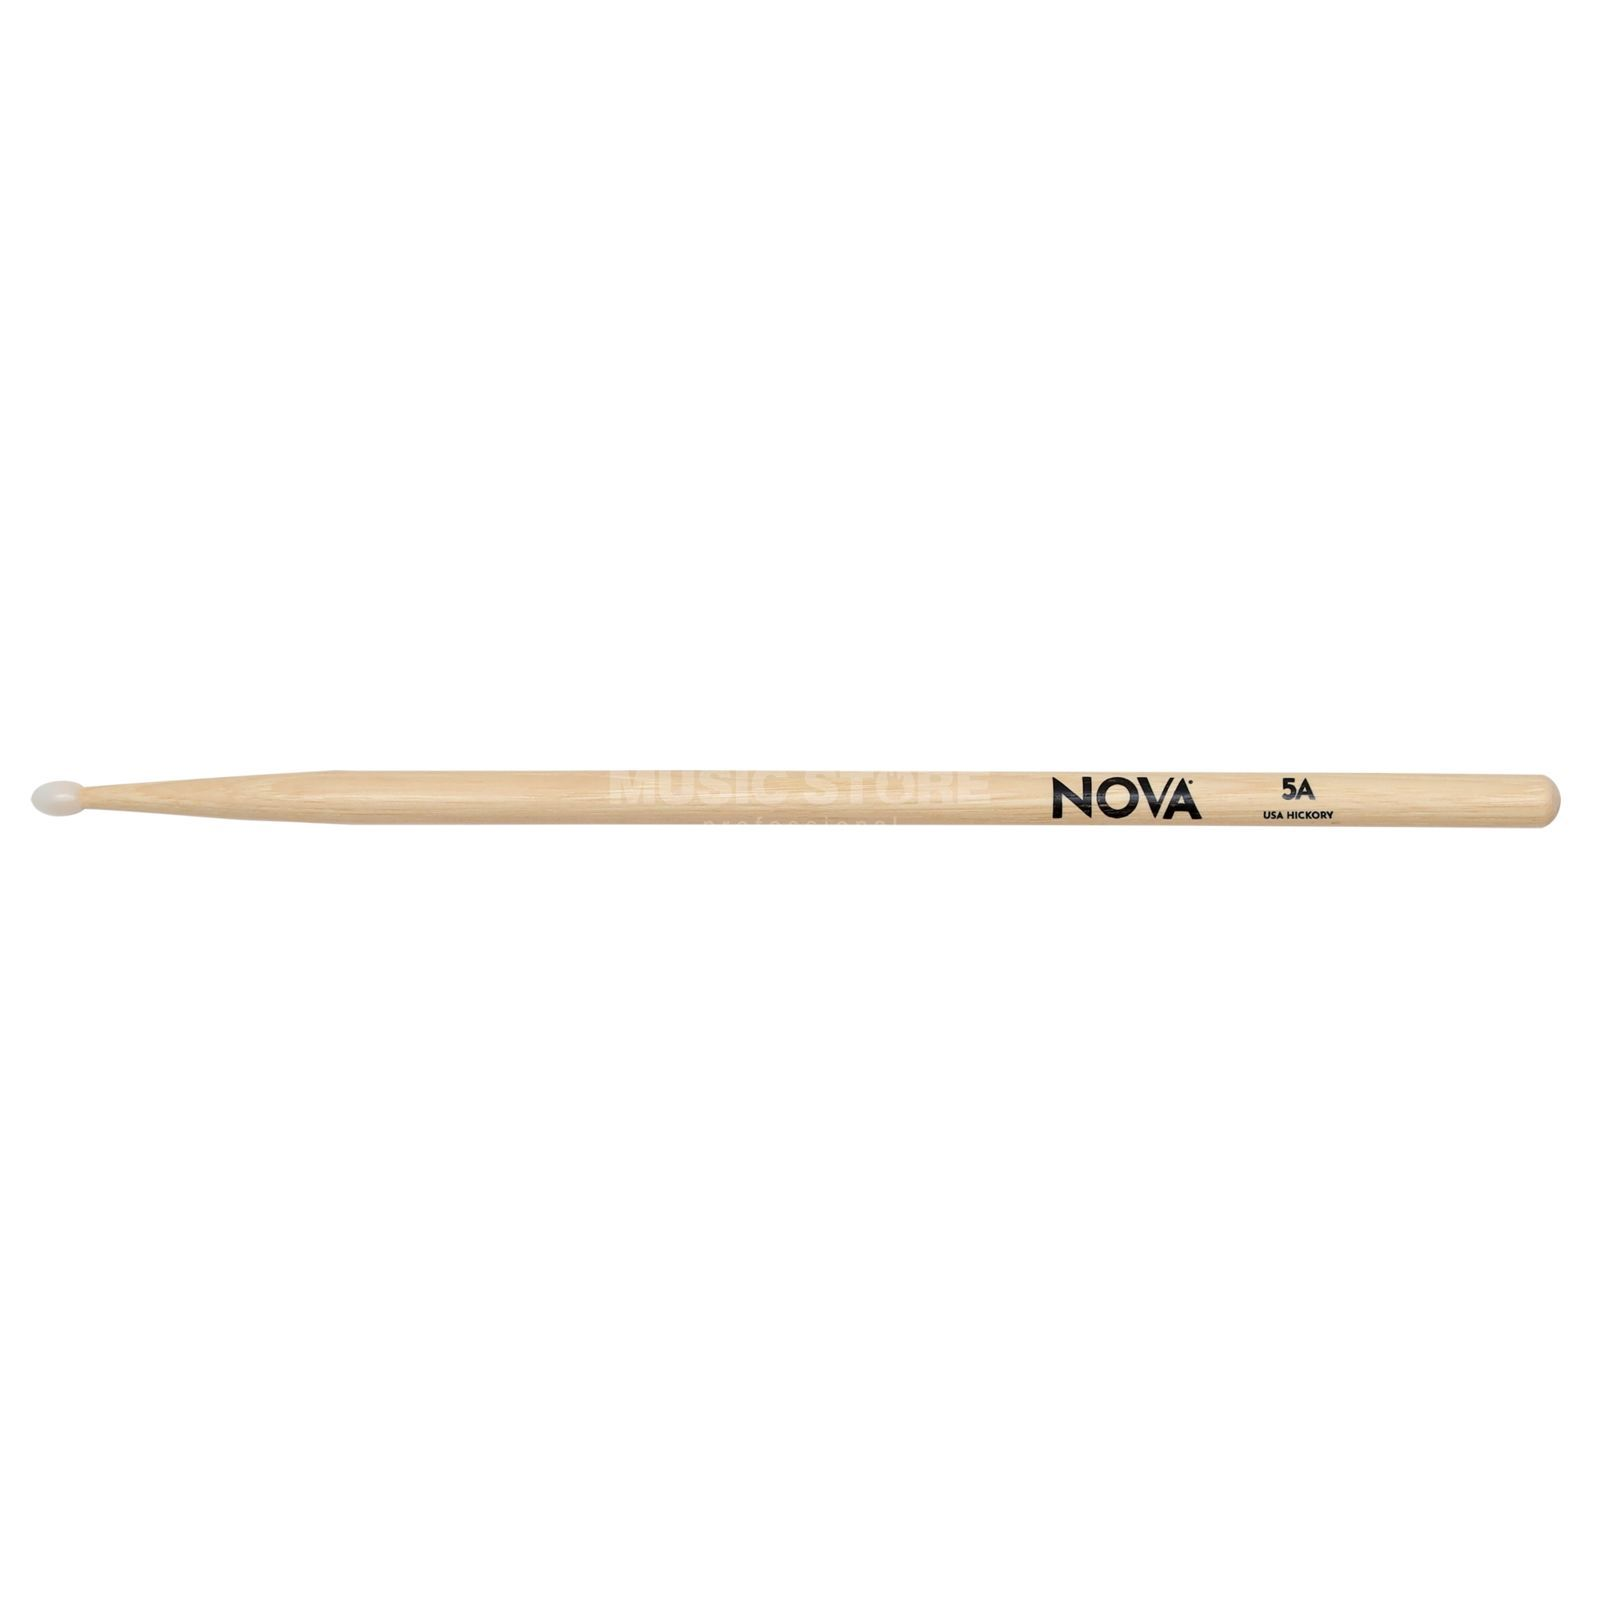 Vic-Firth Nova Drum Sticks 5AN, Nylon Tip Product Image